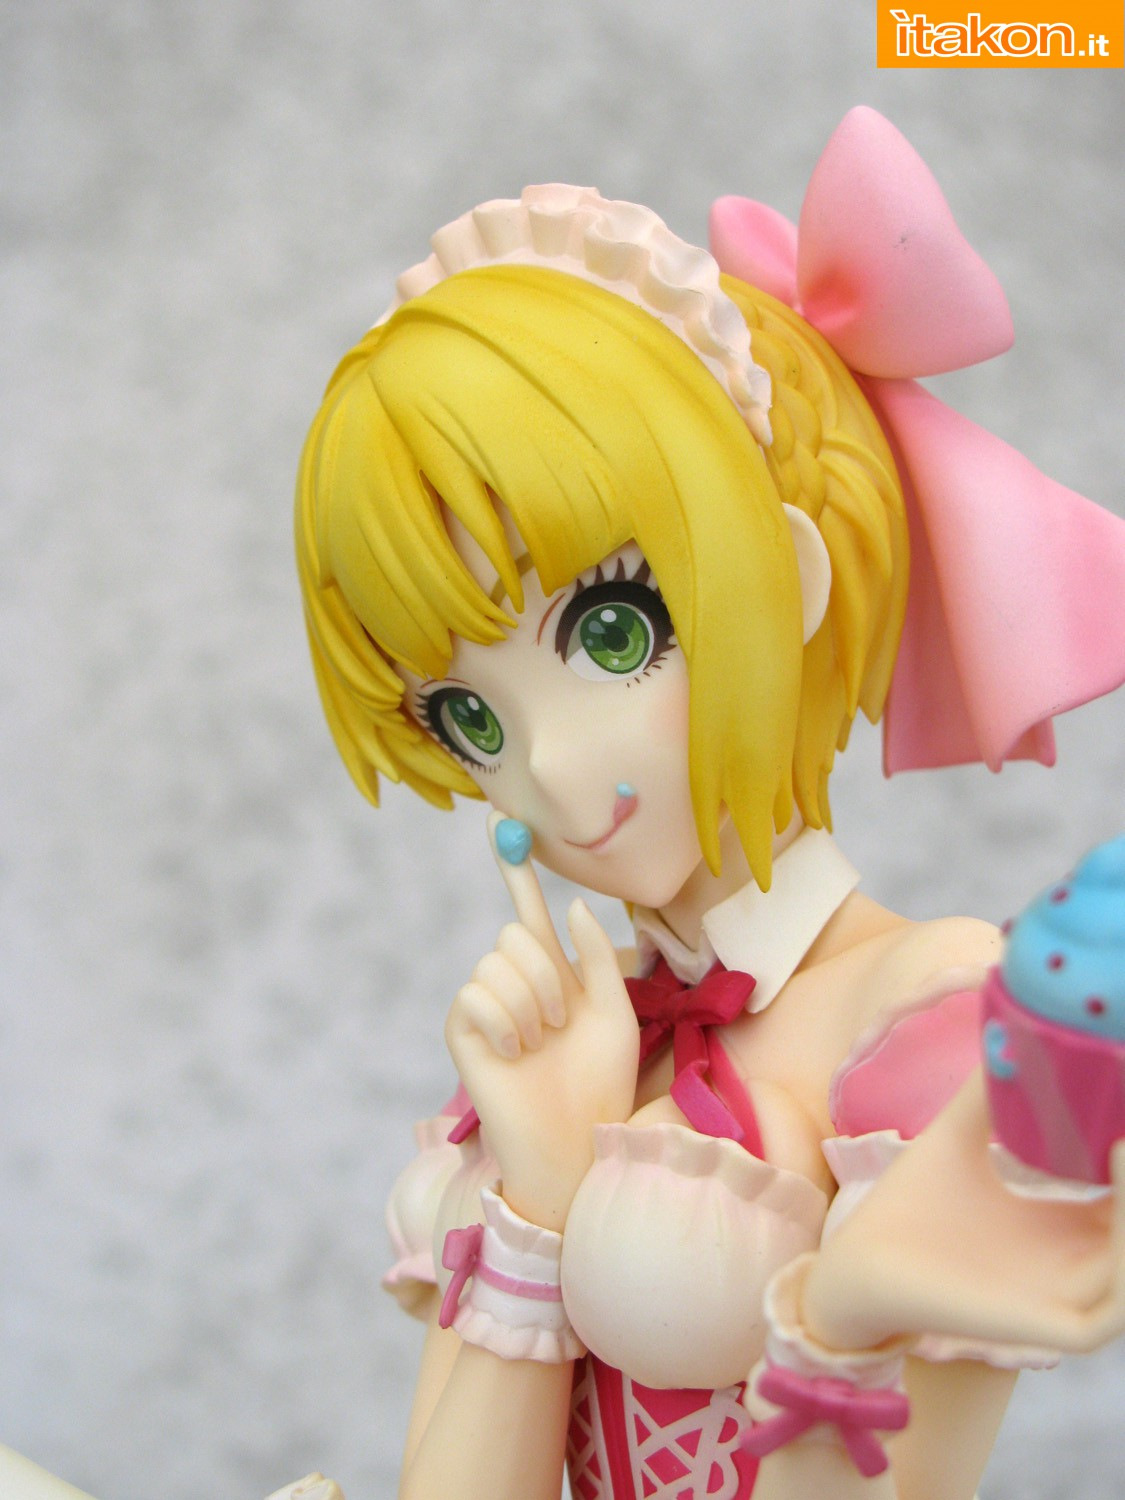 Link a 039 Frederica Miyamoto Little Devil Maid Phat recensione